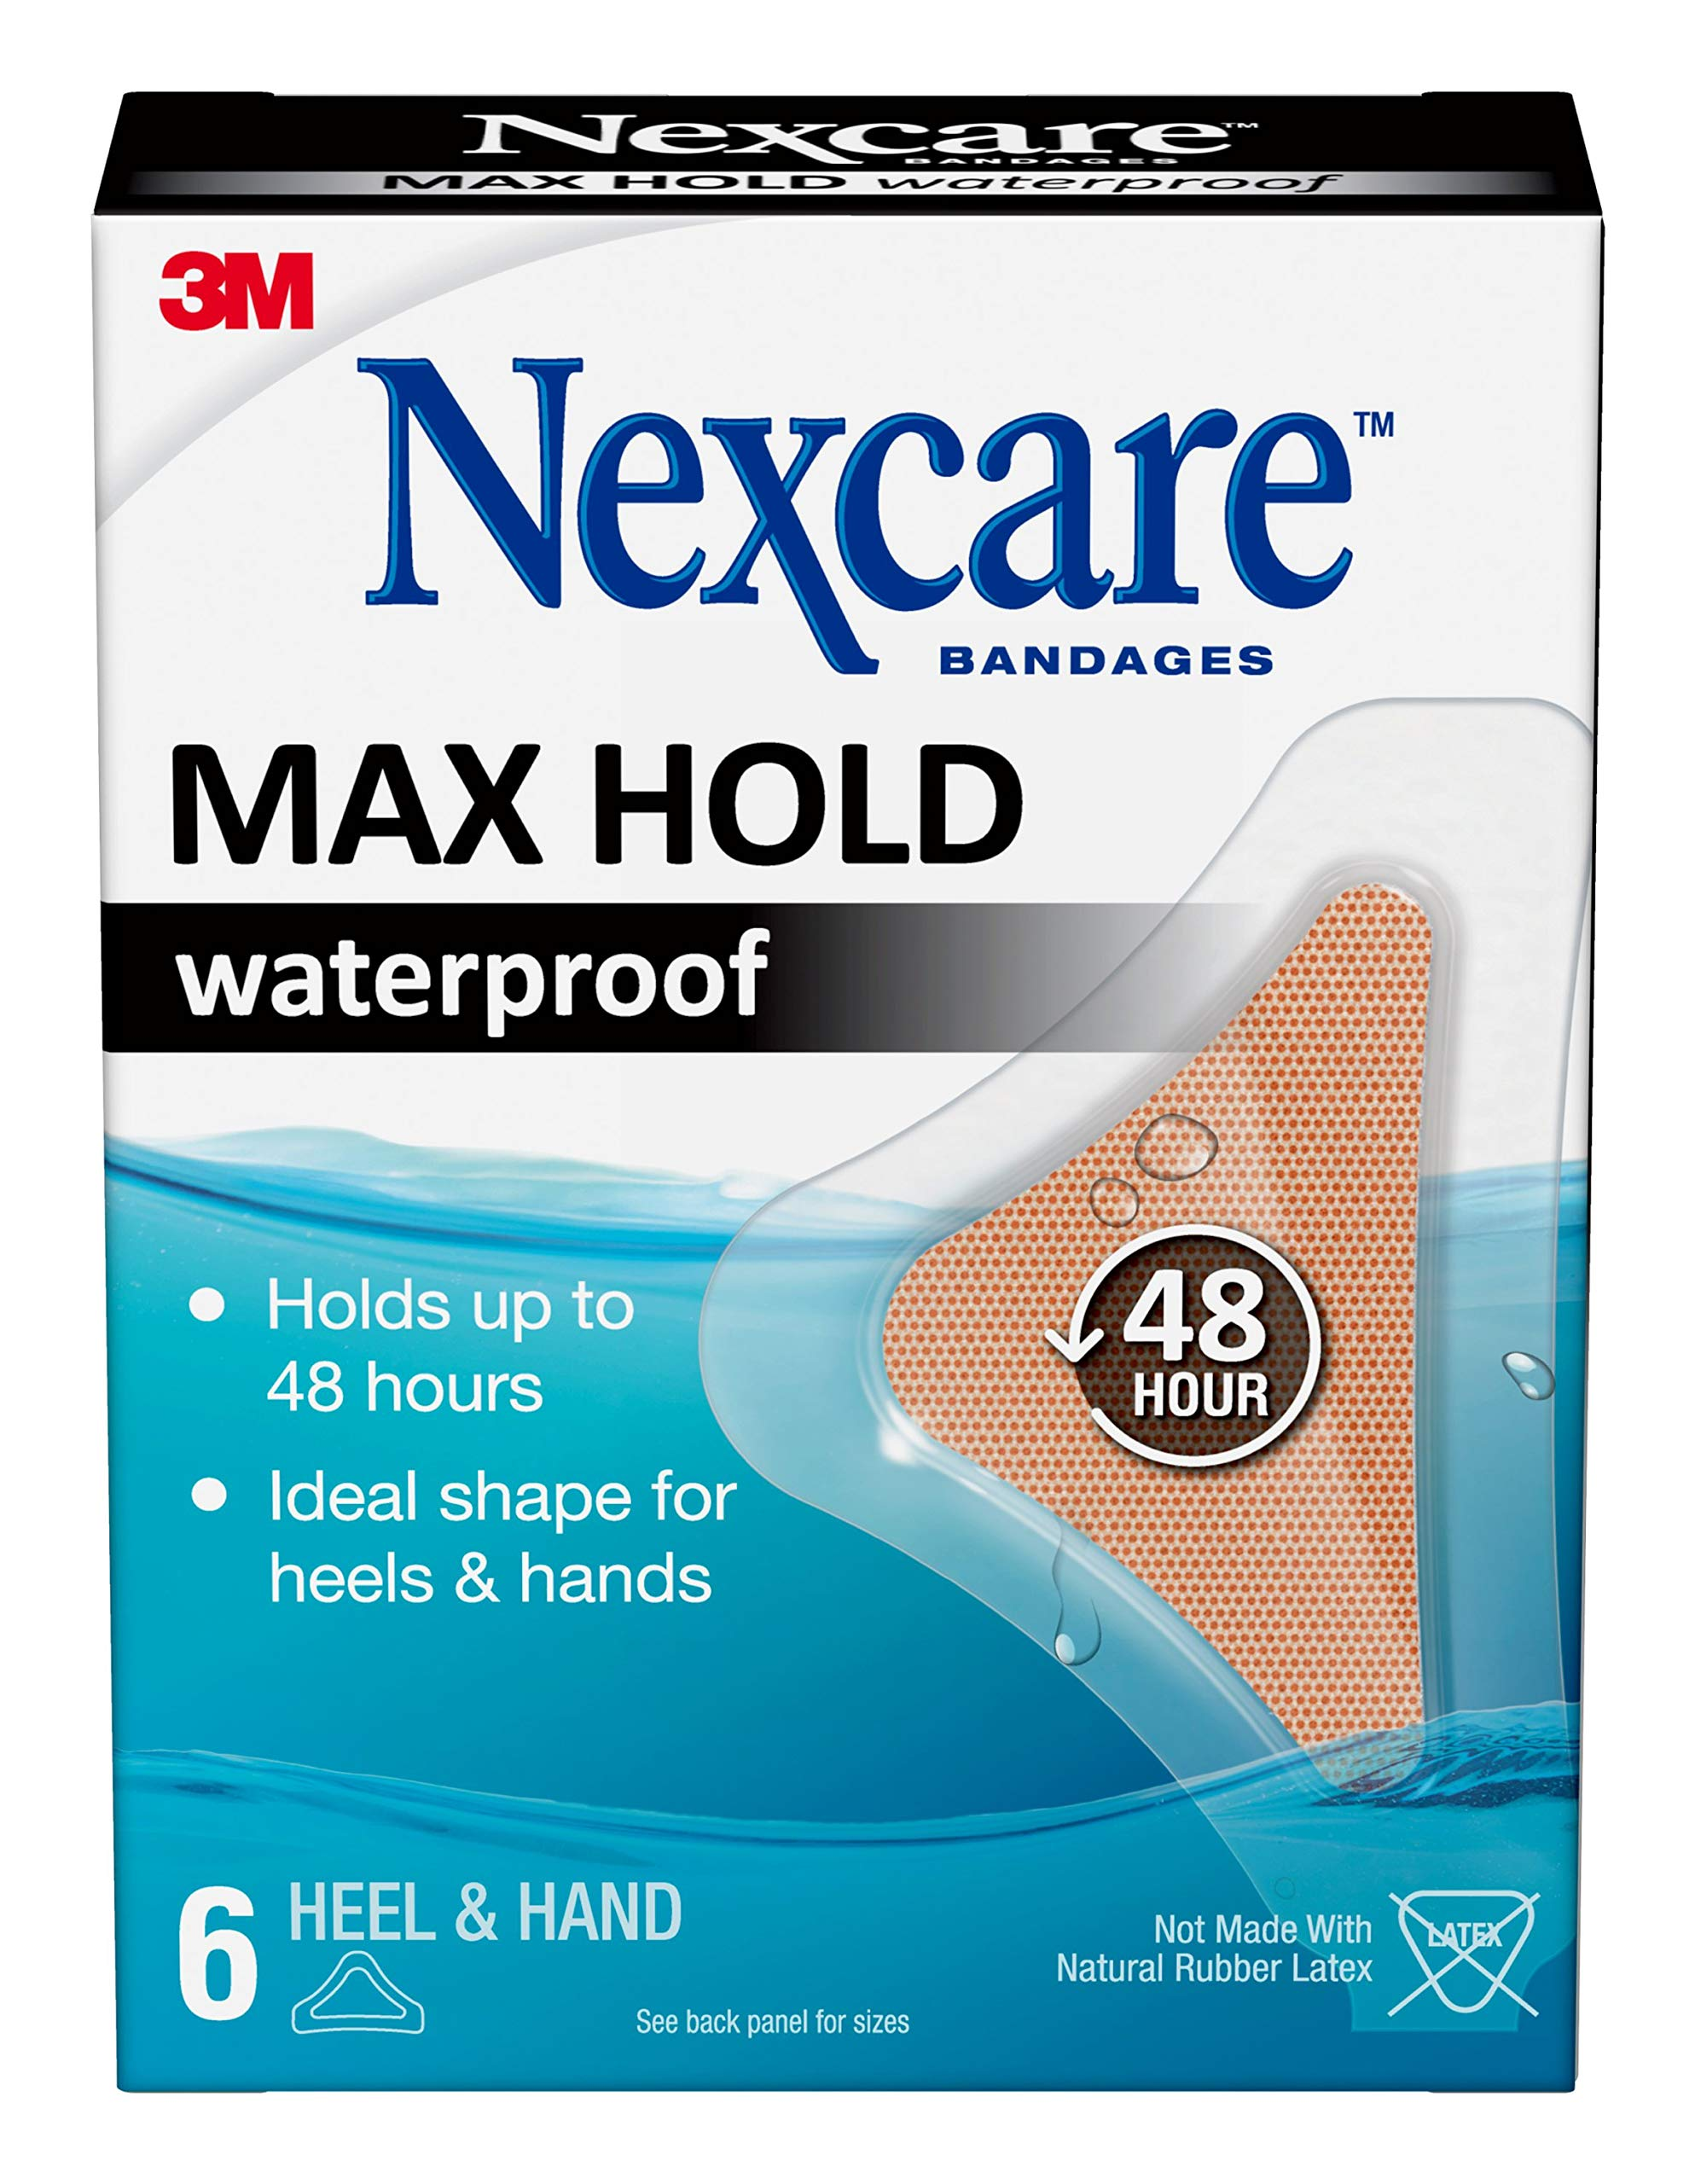 Nexcare Max Hold Waterproof Bandages, Hand/Heel, 6Count